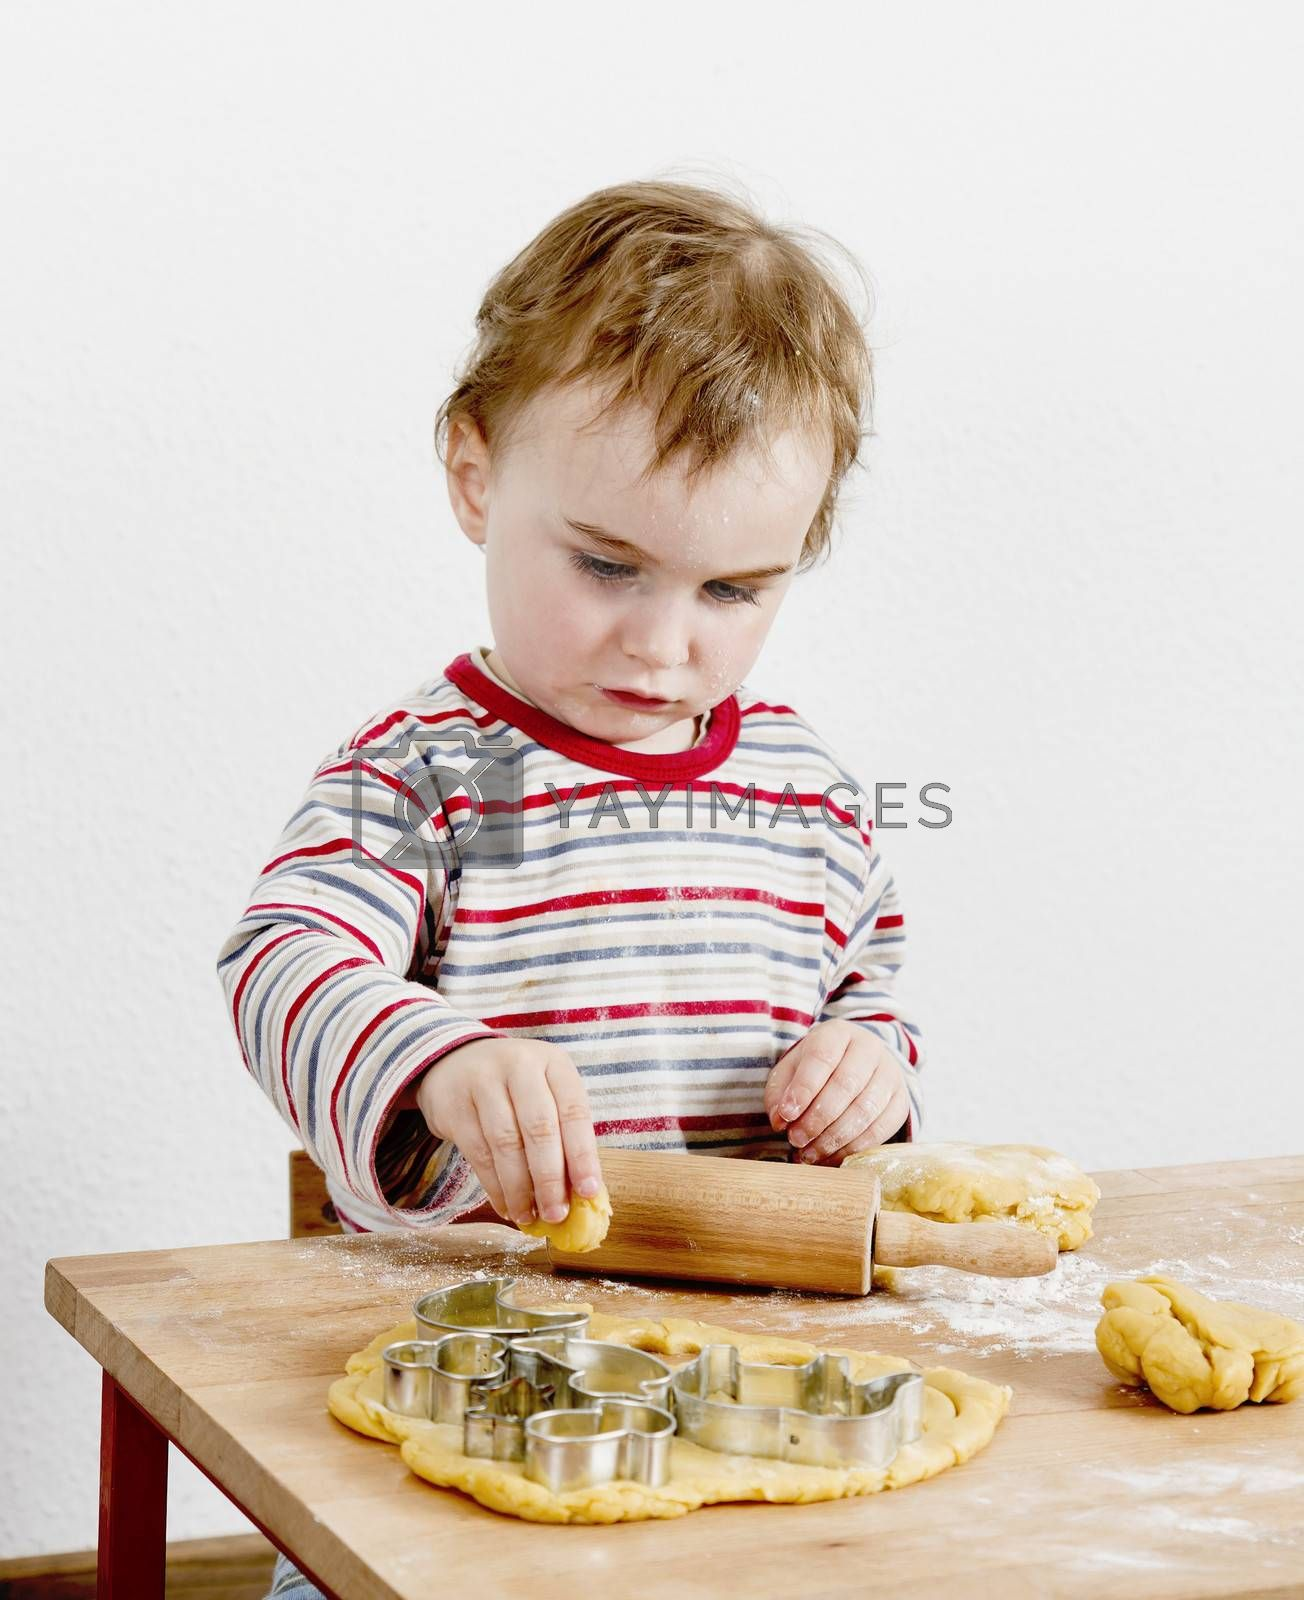 vertical image of 2 year old child making biscuit  at wooden desk